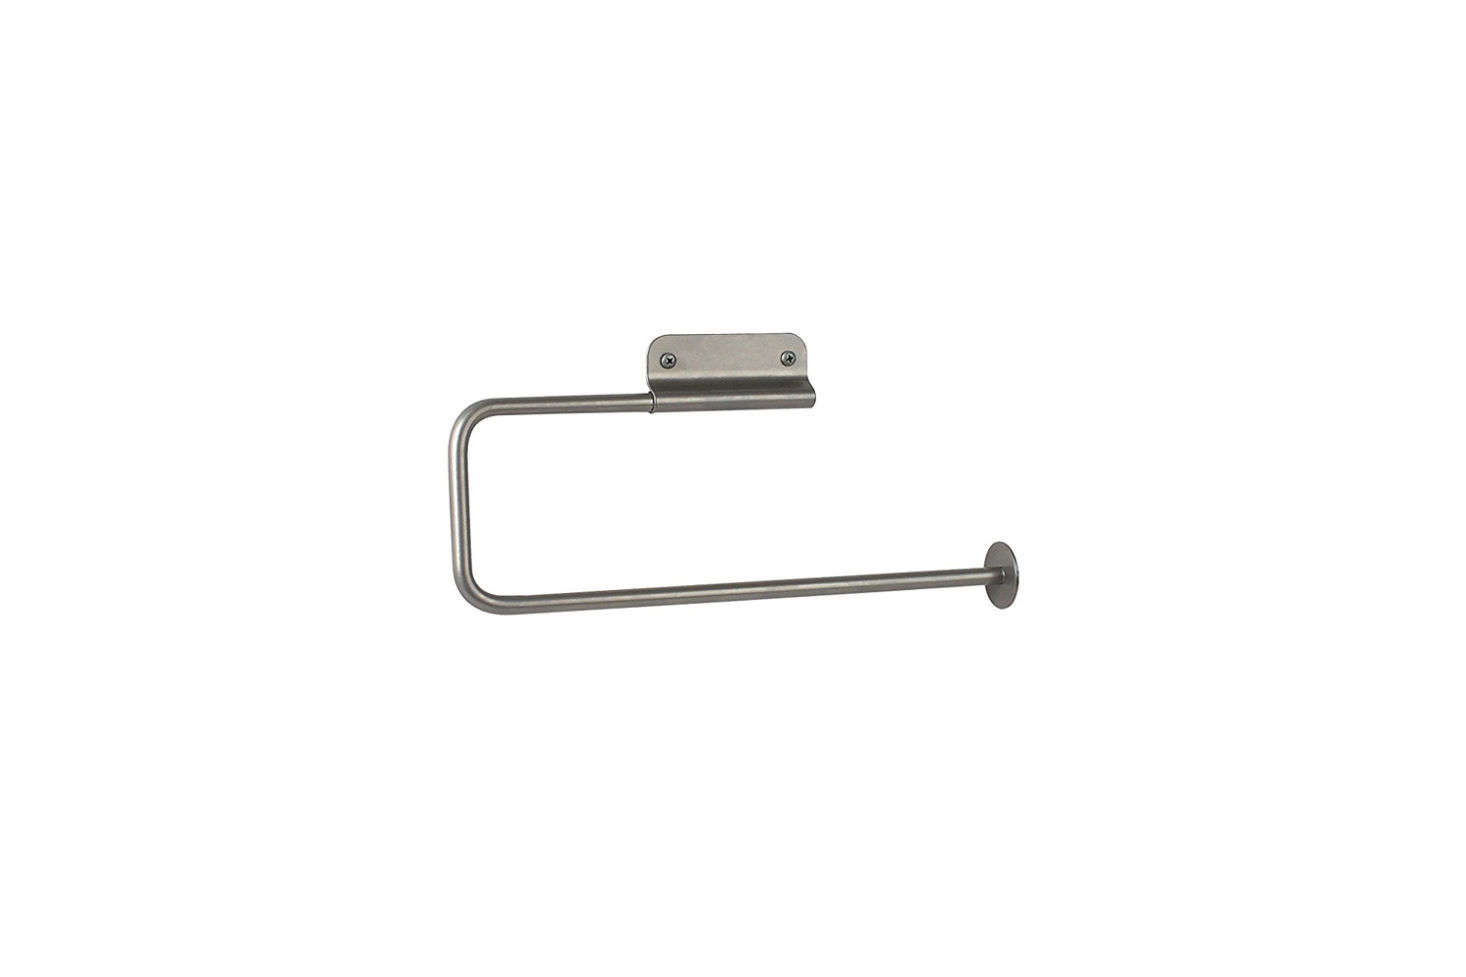 147d48257f2 The Spectrum Diversified Euro Wall-Mounted Paper Towel Holder in satin  nickel is  9.55 at